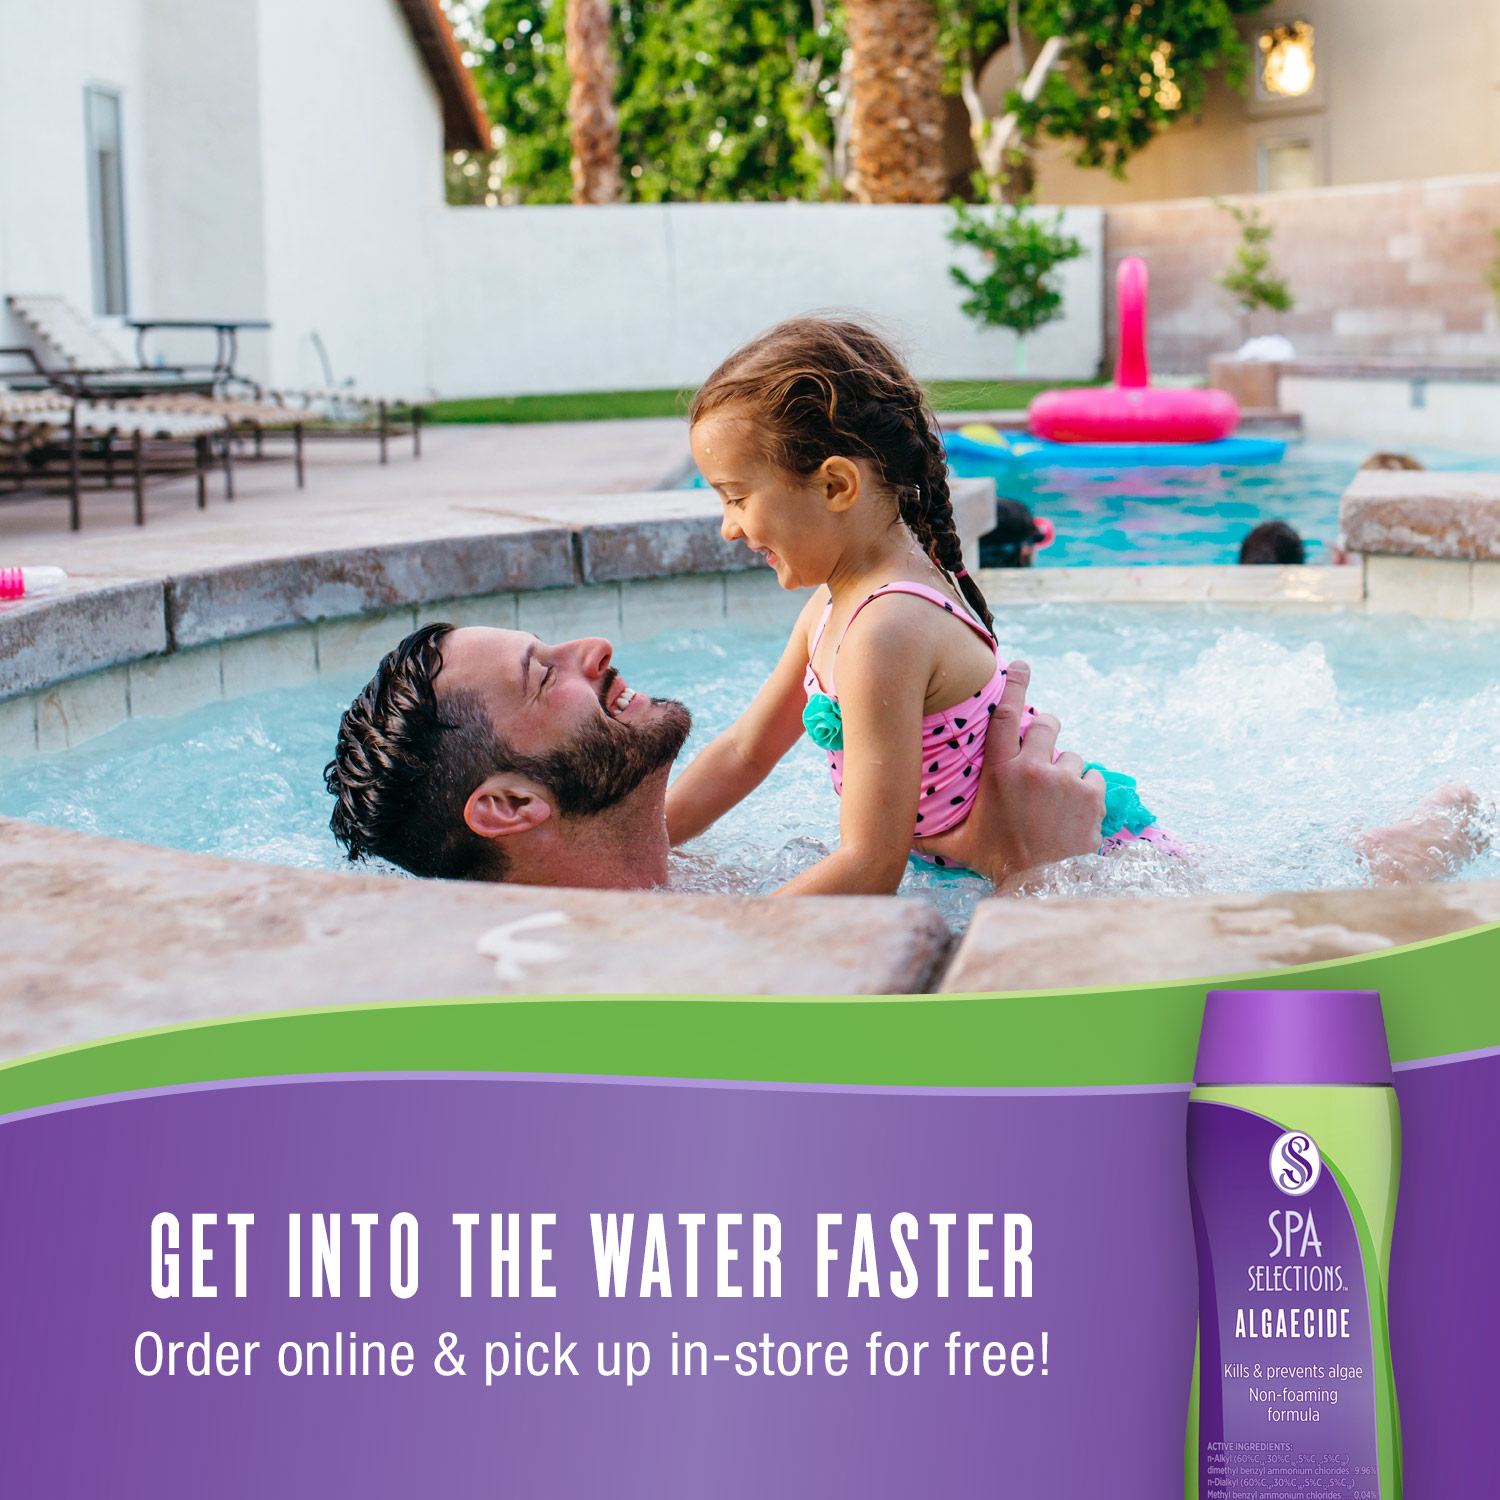 Order Spa Selections algaecide online and pick up in-store for free! Man and daughter enjoying clear hot tub.